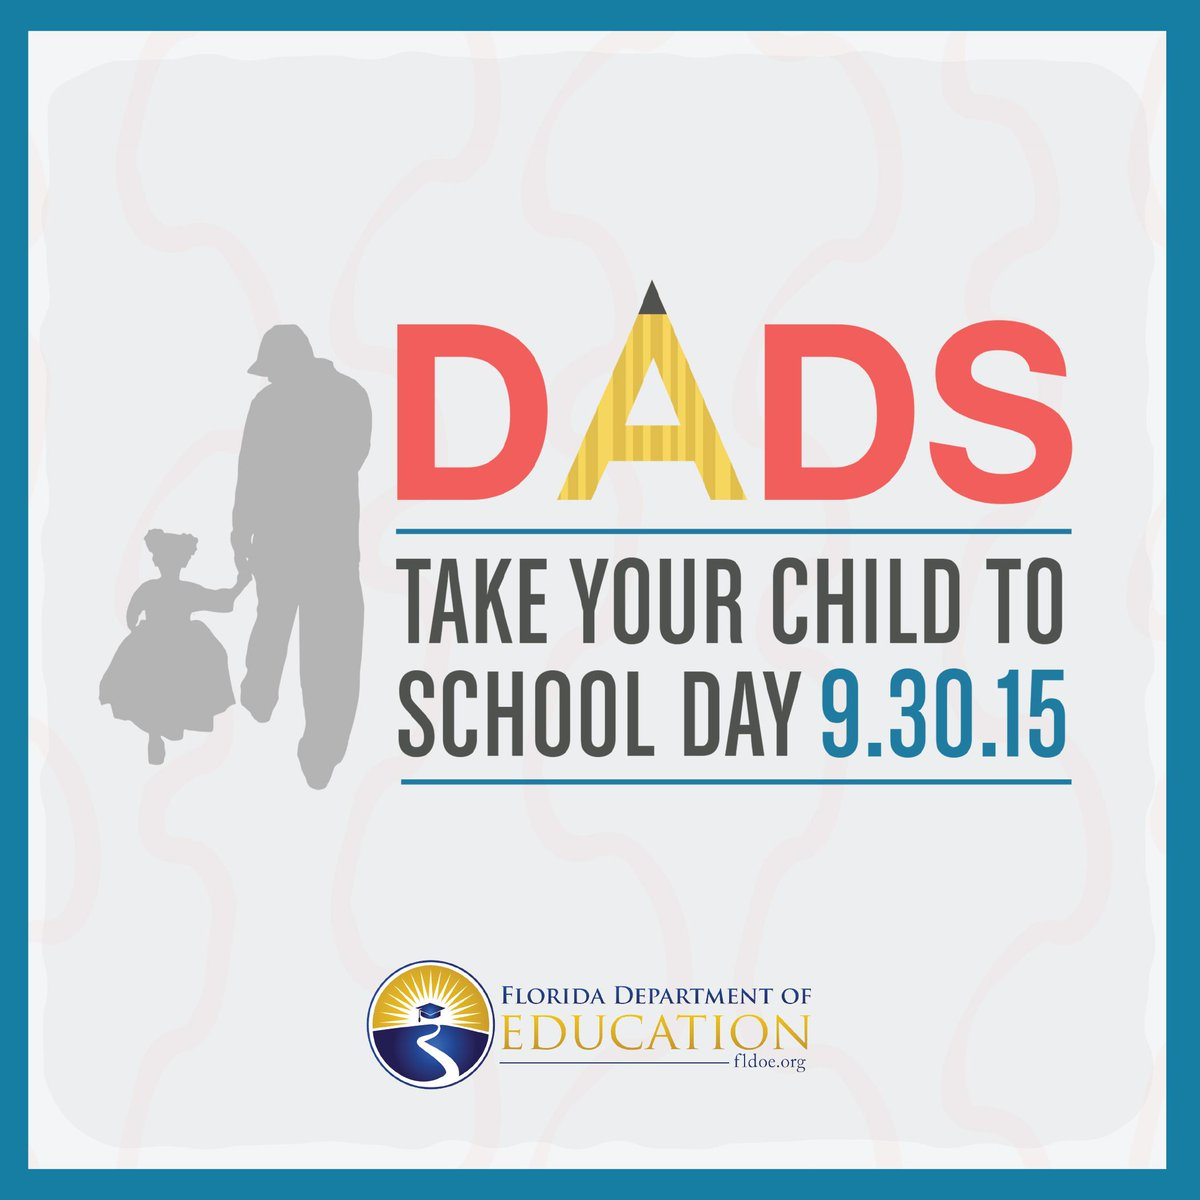 On Sept 30th we encourage our #FL fathers & male role models to join in #FLDadsAtSchoolDay! http://t.co/n5Lf6GfKKf http://t.co/y7RnELF4dx